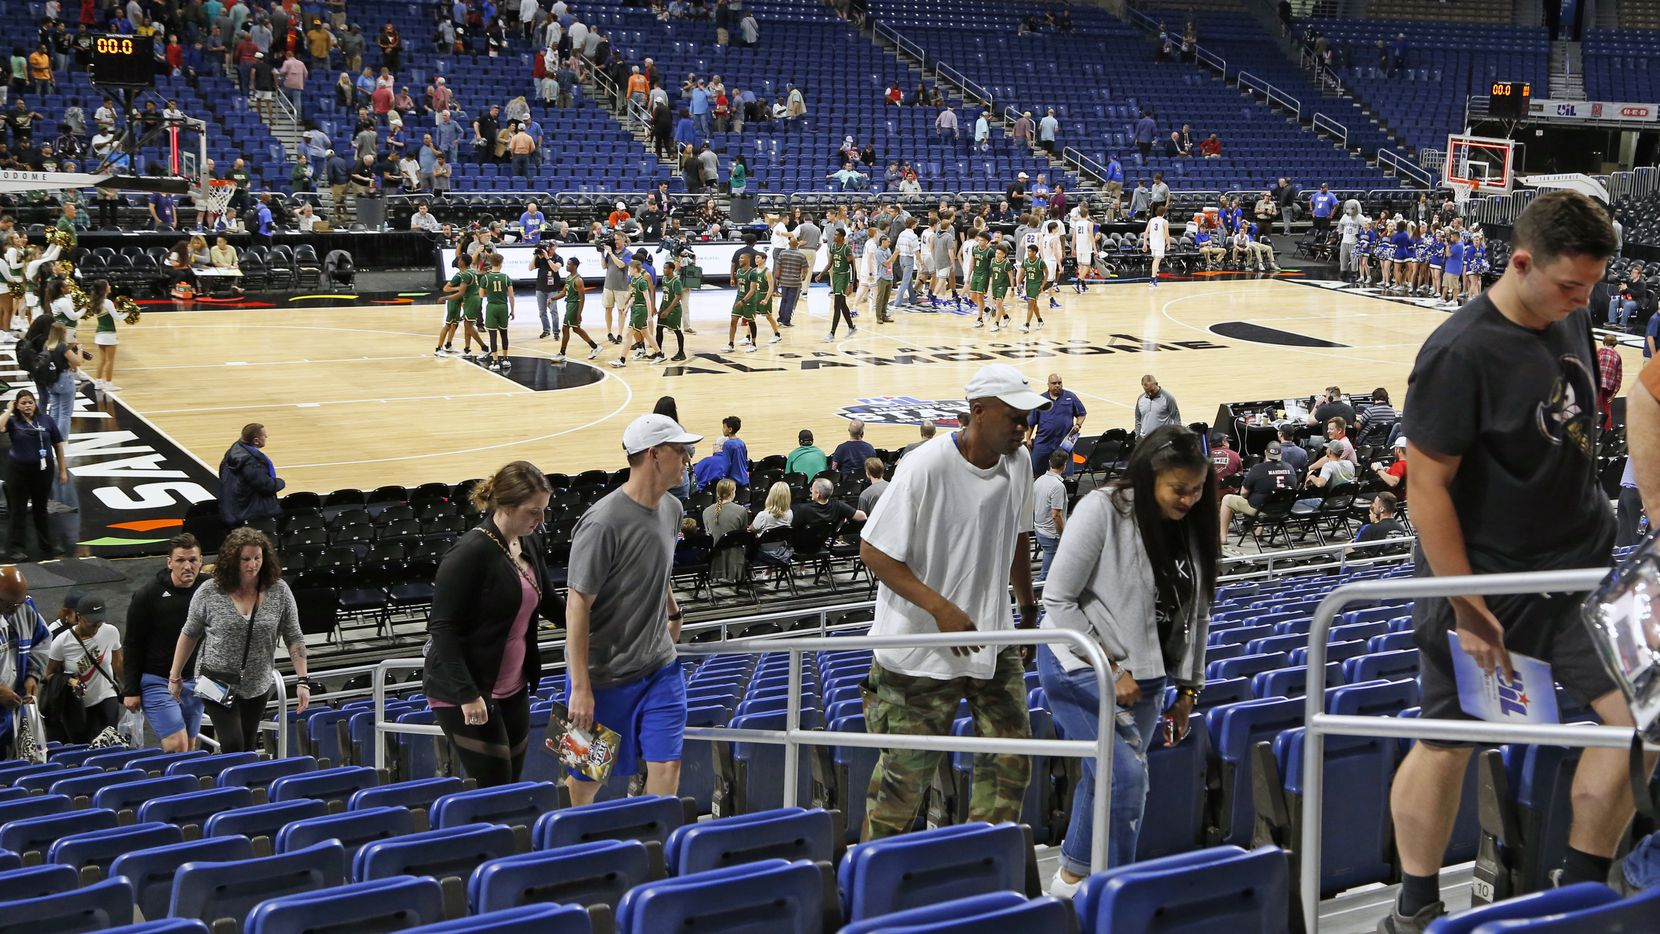 At the conclusion of the final UIL Class 3A state semifinal, fans depart as the rest of thee tournament was suspended on March 12, 2020 at the Alamodome.